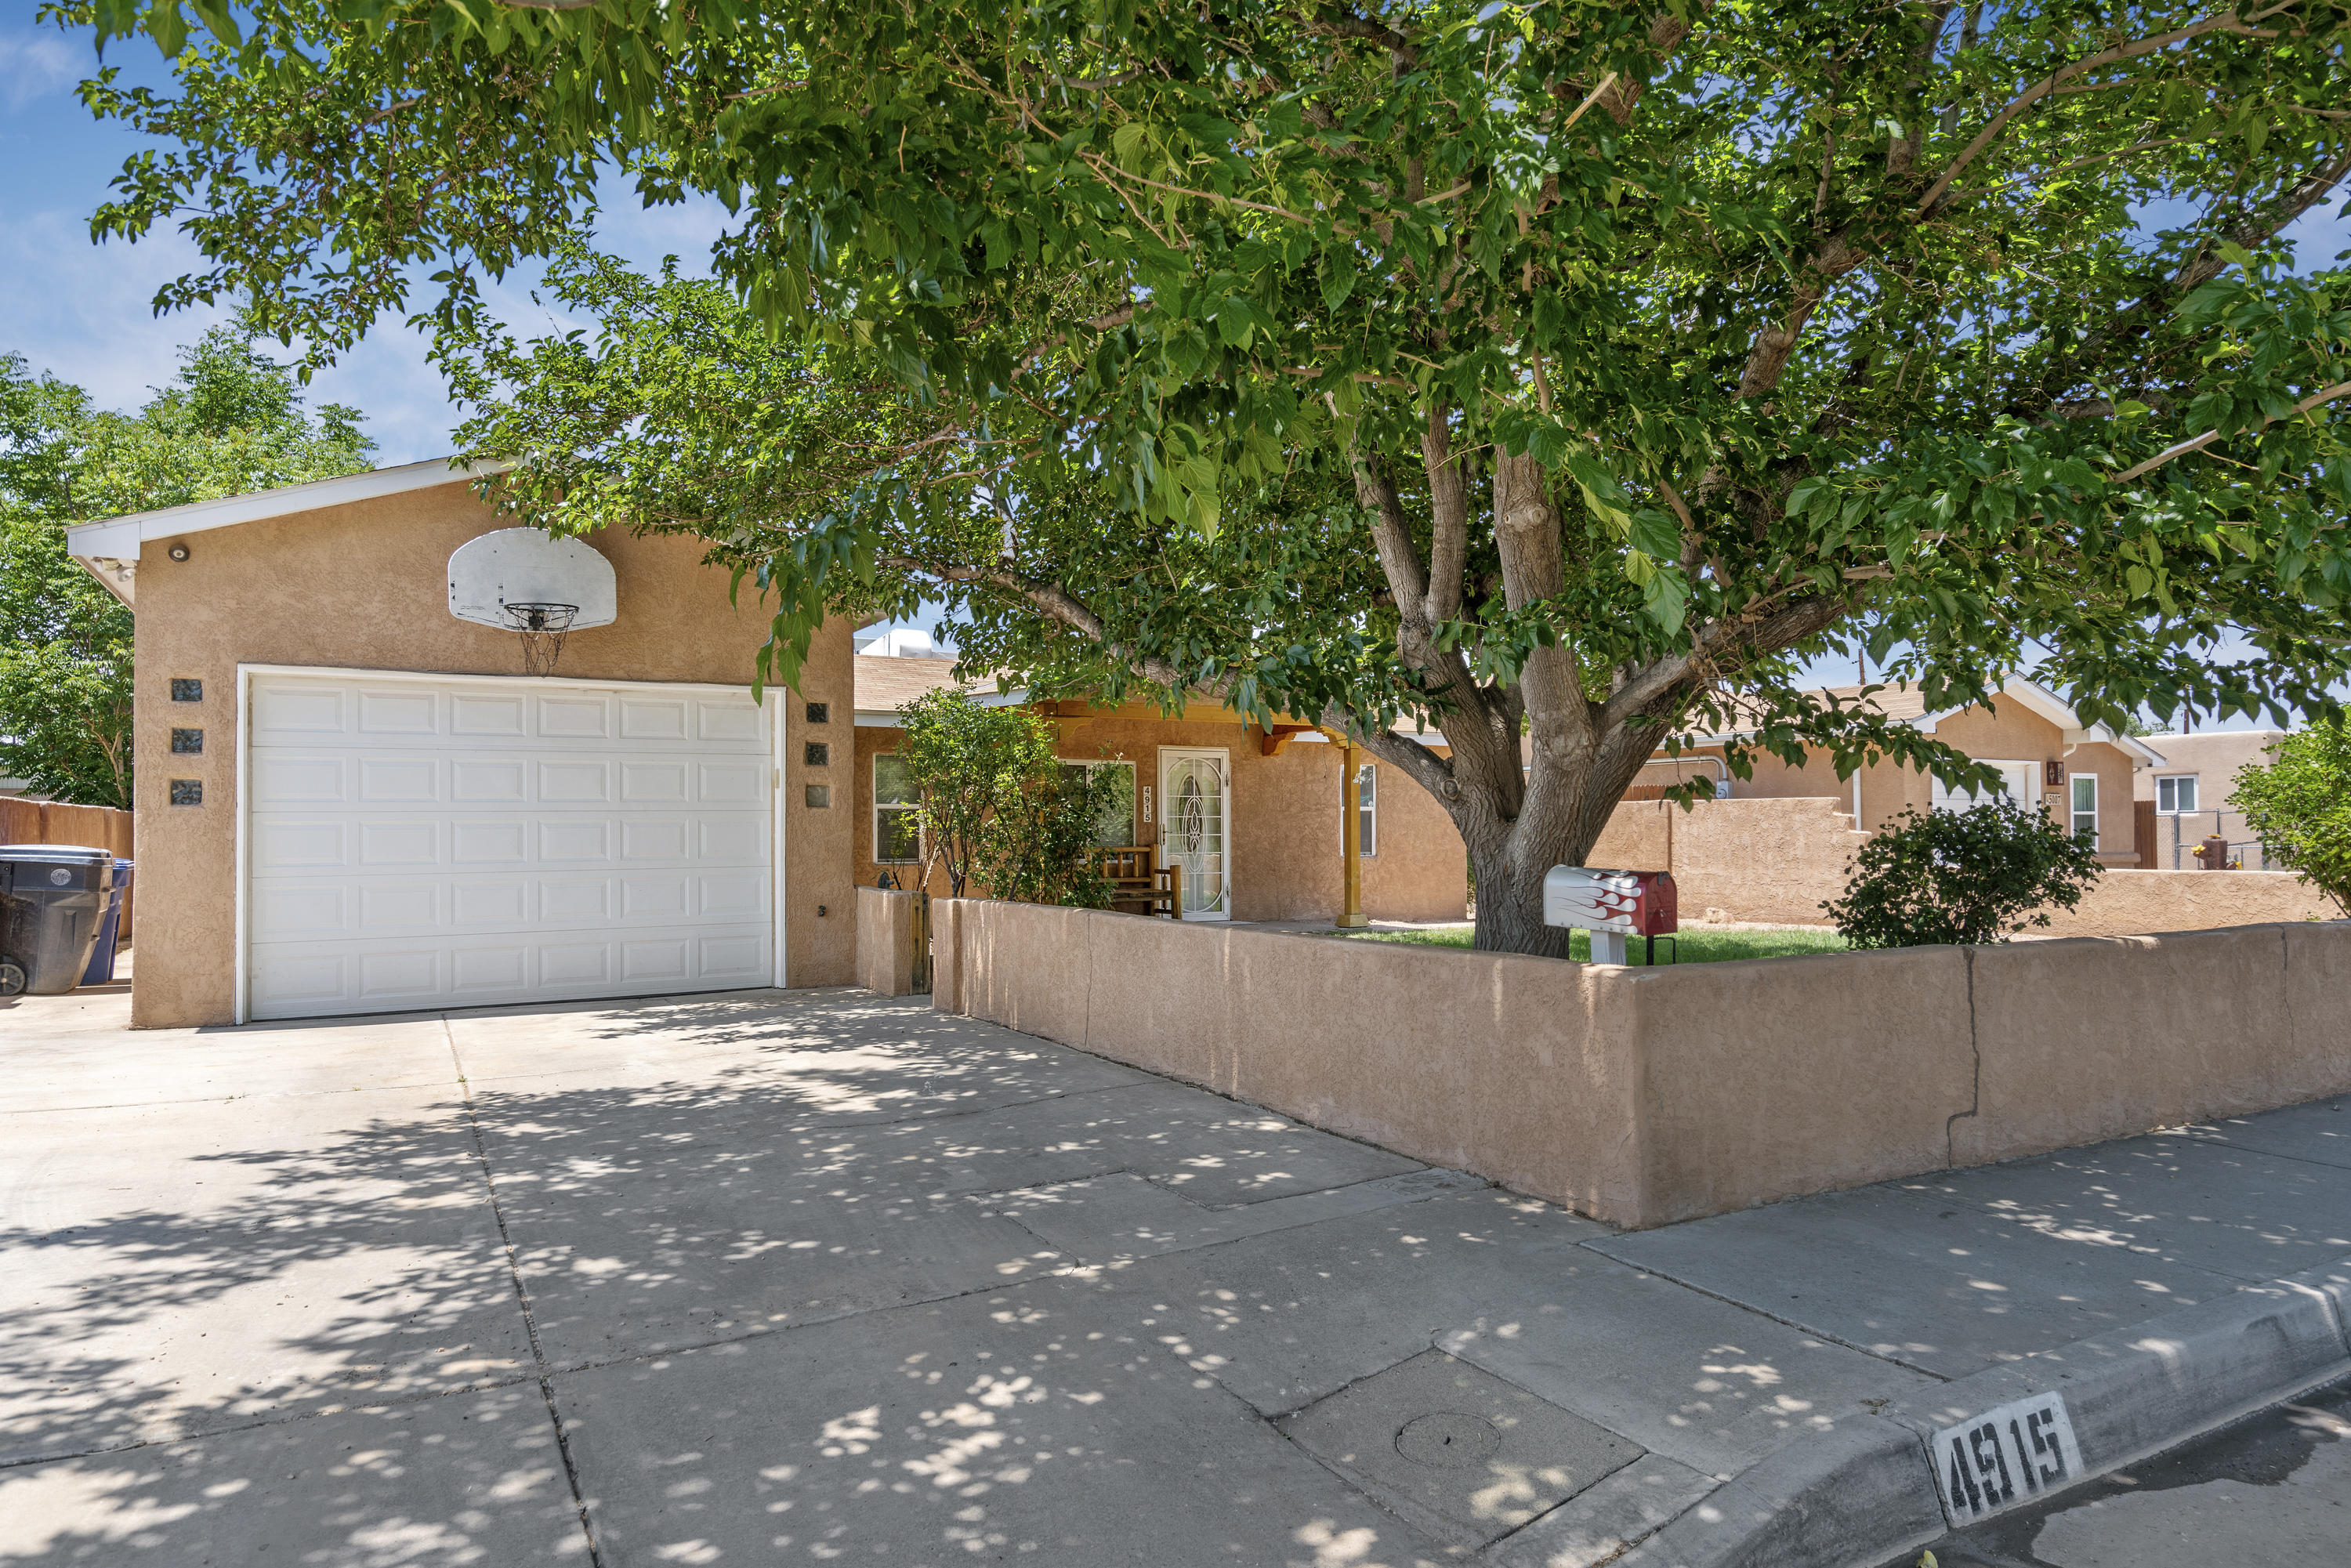 Check out this 4 bedroom 3 bathroom home located in the North valley. You are greeted by wood floors and open floor plan as you walk thru the door. This home offers generous size rooms and oversized garage. Stop in today!